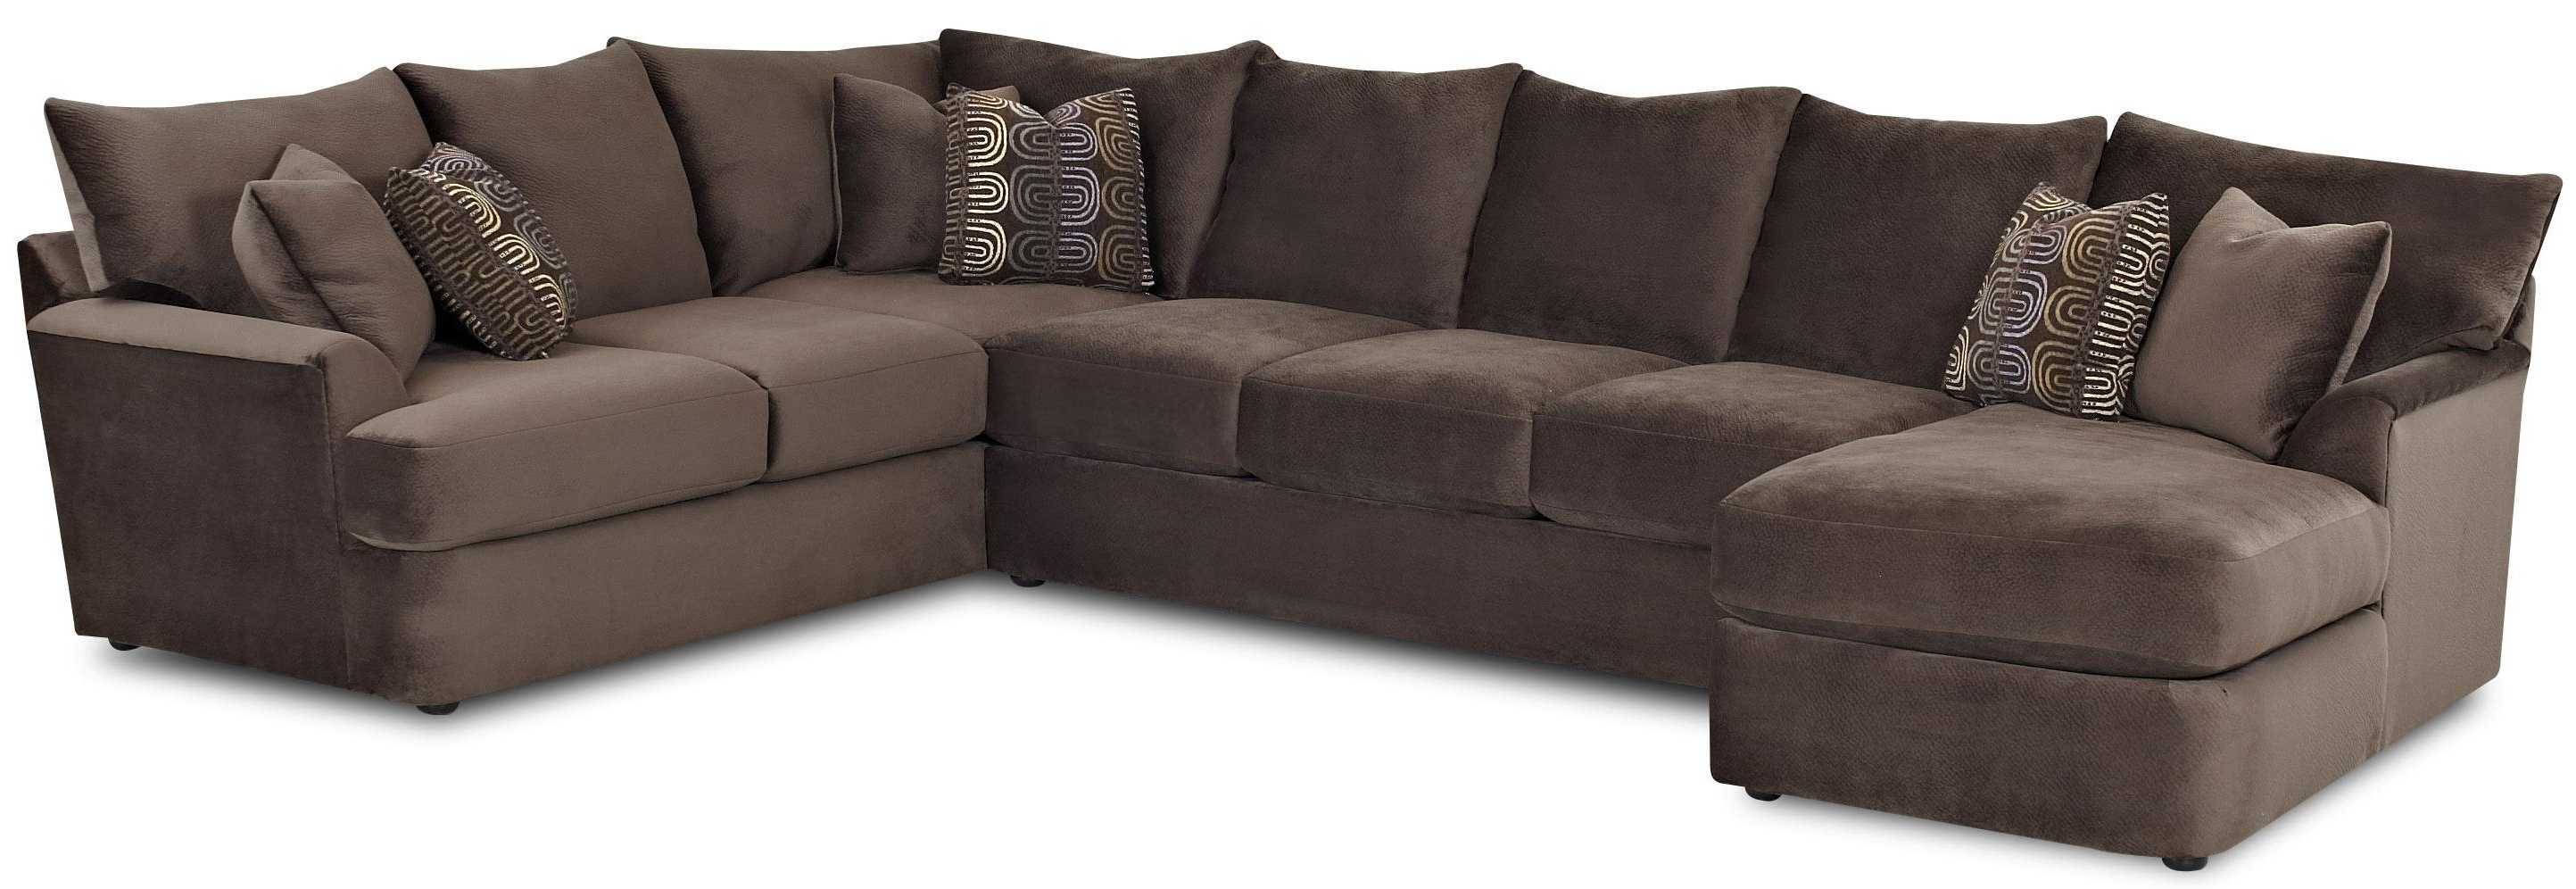 Recent Blue U Shaped Sectionals In Sectional Sofa Design: Best Seller L Shaped Sectional Sofas For (View 14 of 20)